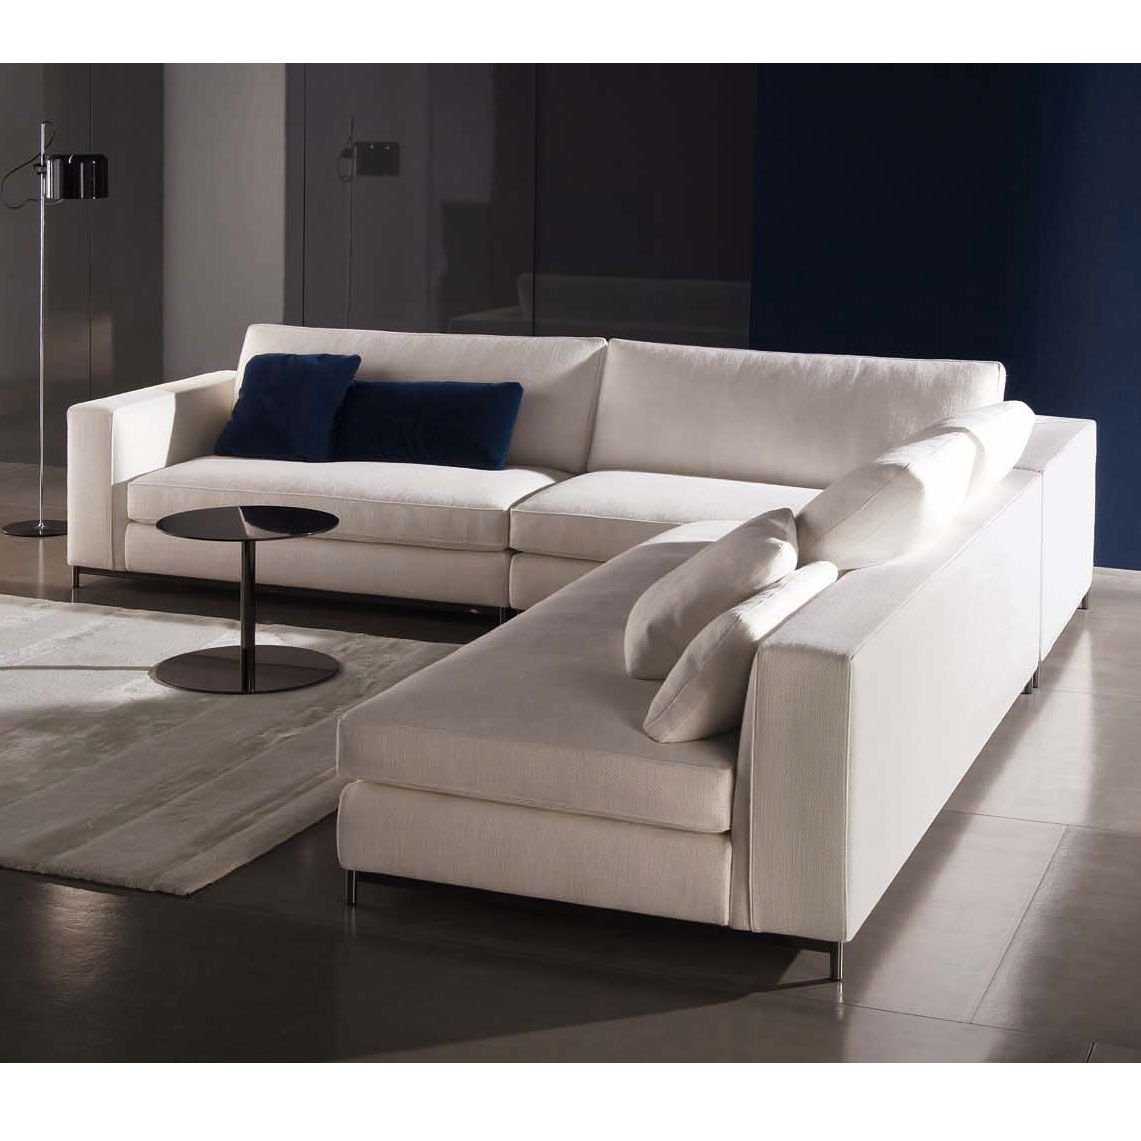 leather sofa leather sectional sofas white sectional diapers white